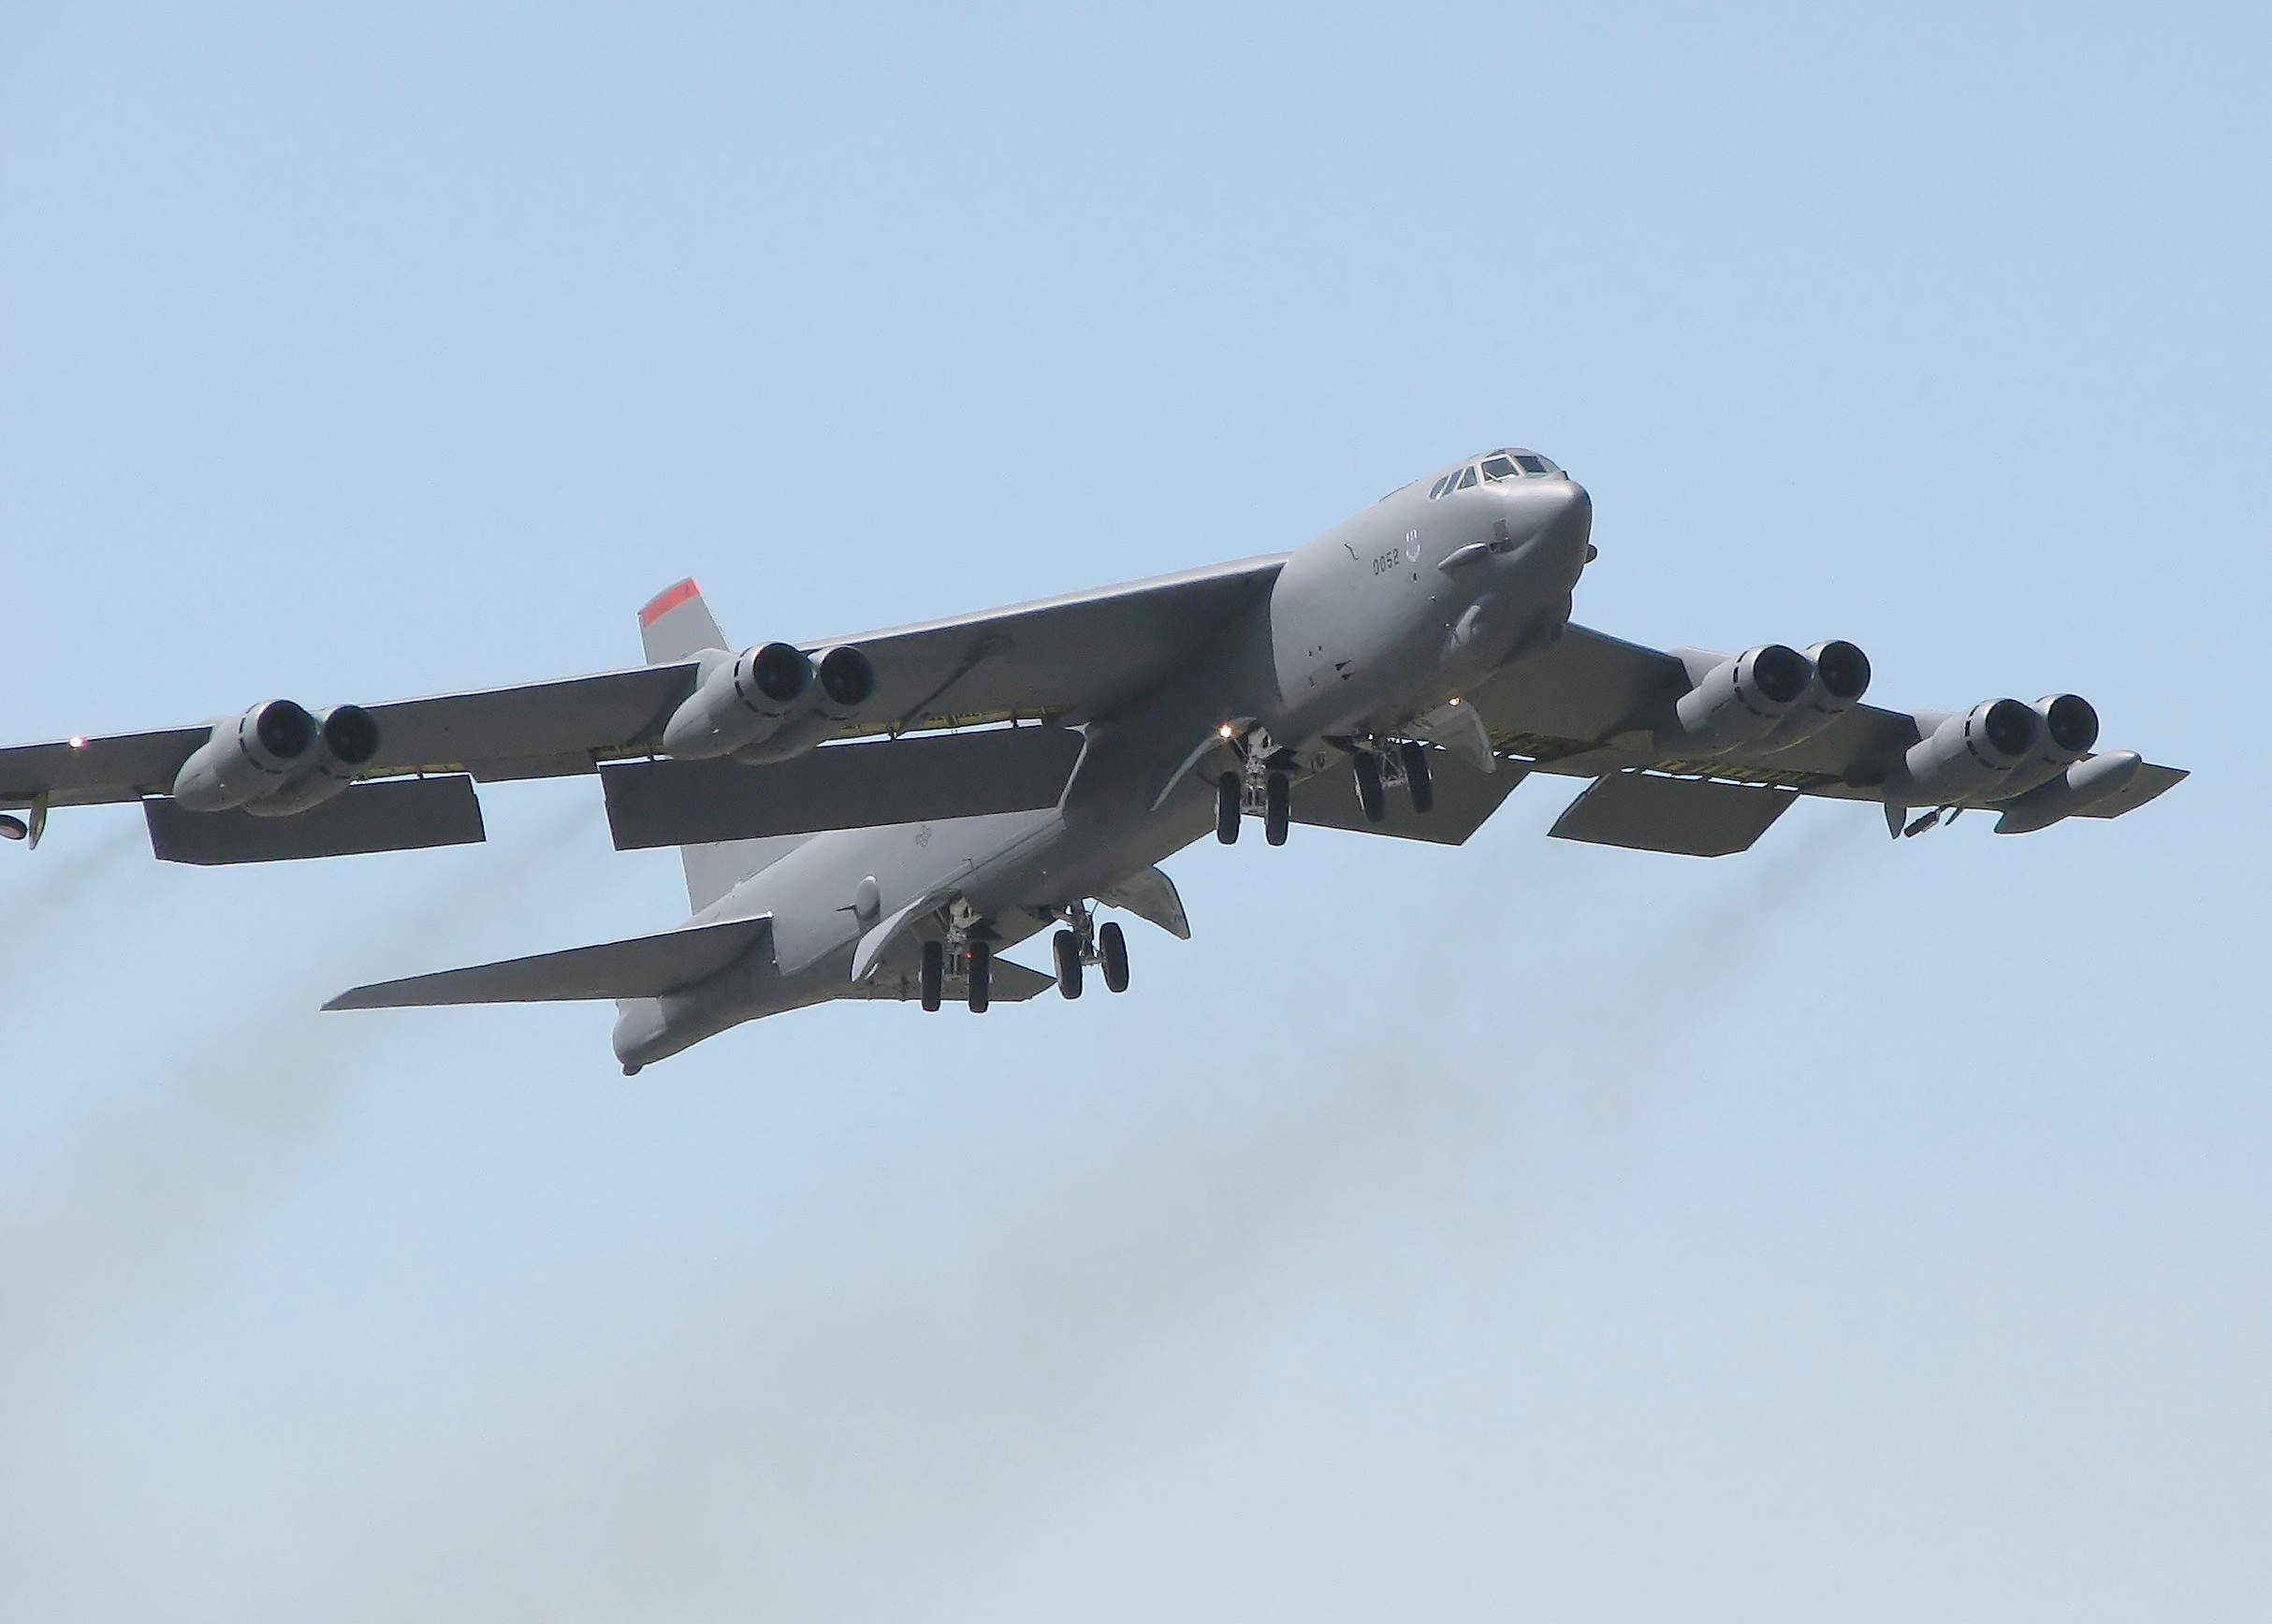 Aircraft military bomber b-52